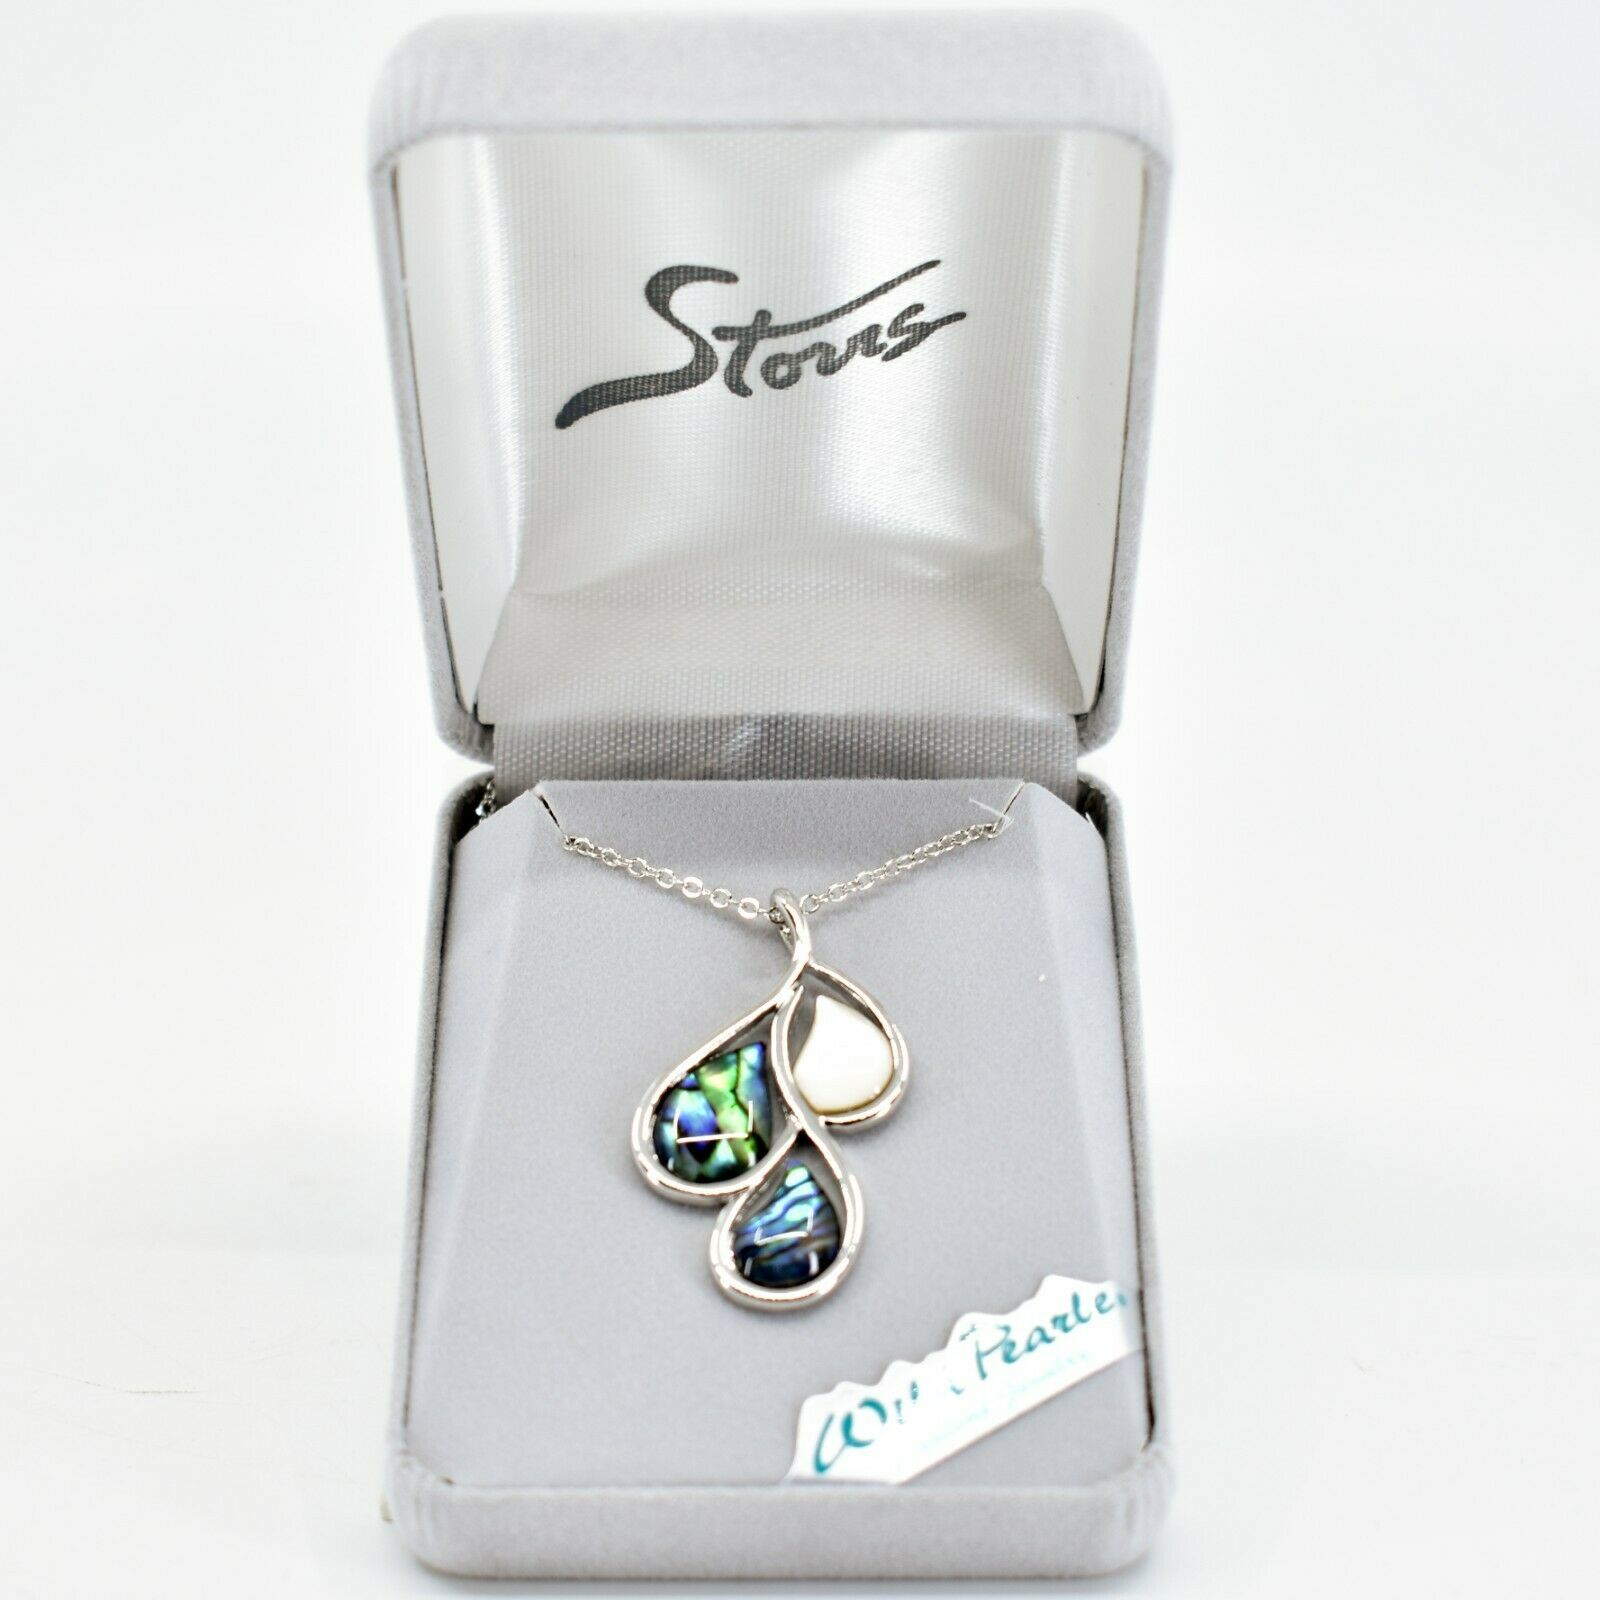 A.T. Storrs Wild Pearle Abalone Shell November Rain Drop w/ Silver Tone Necklace